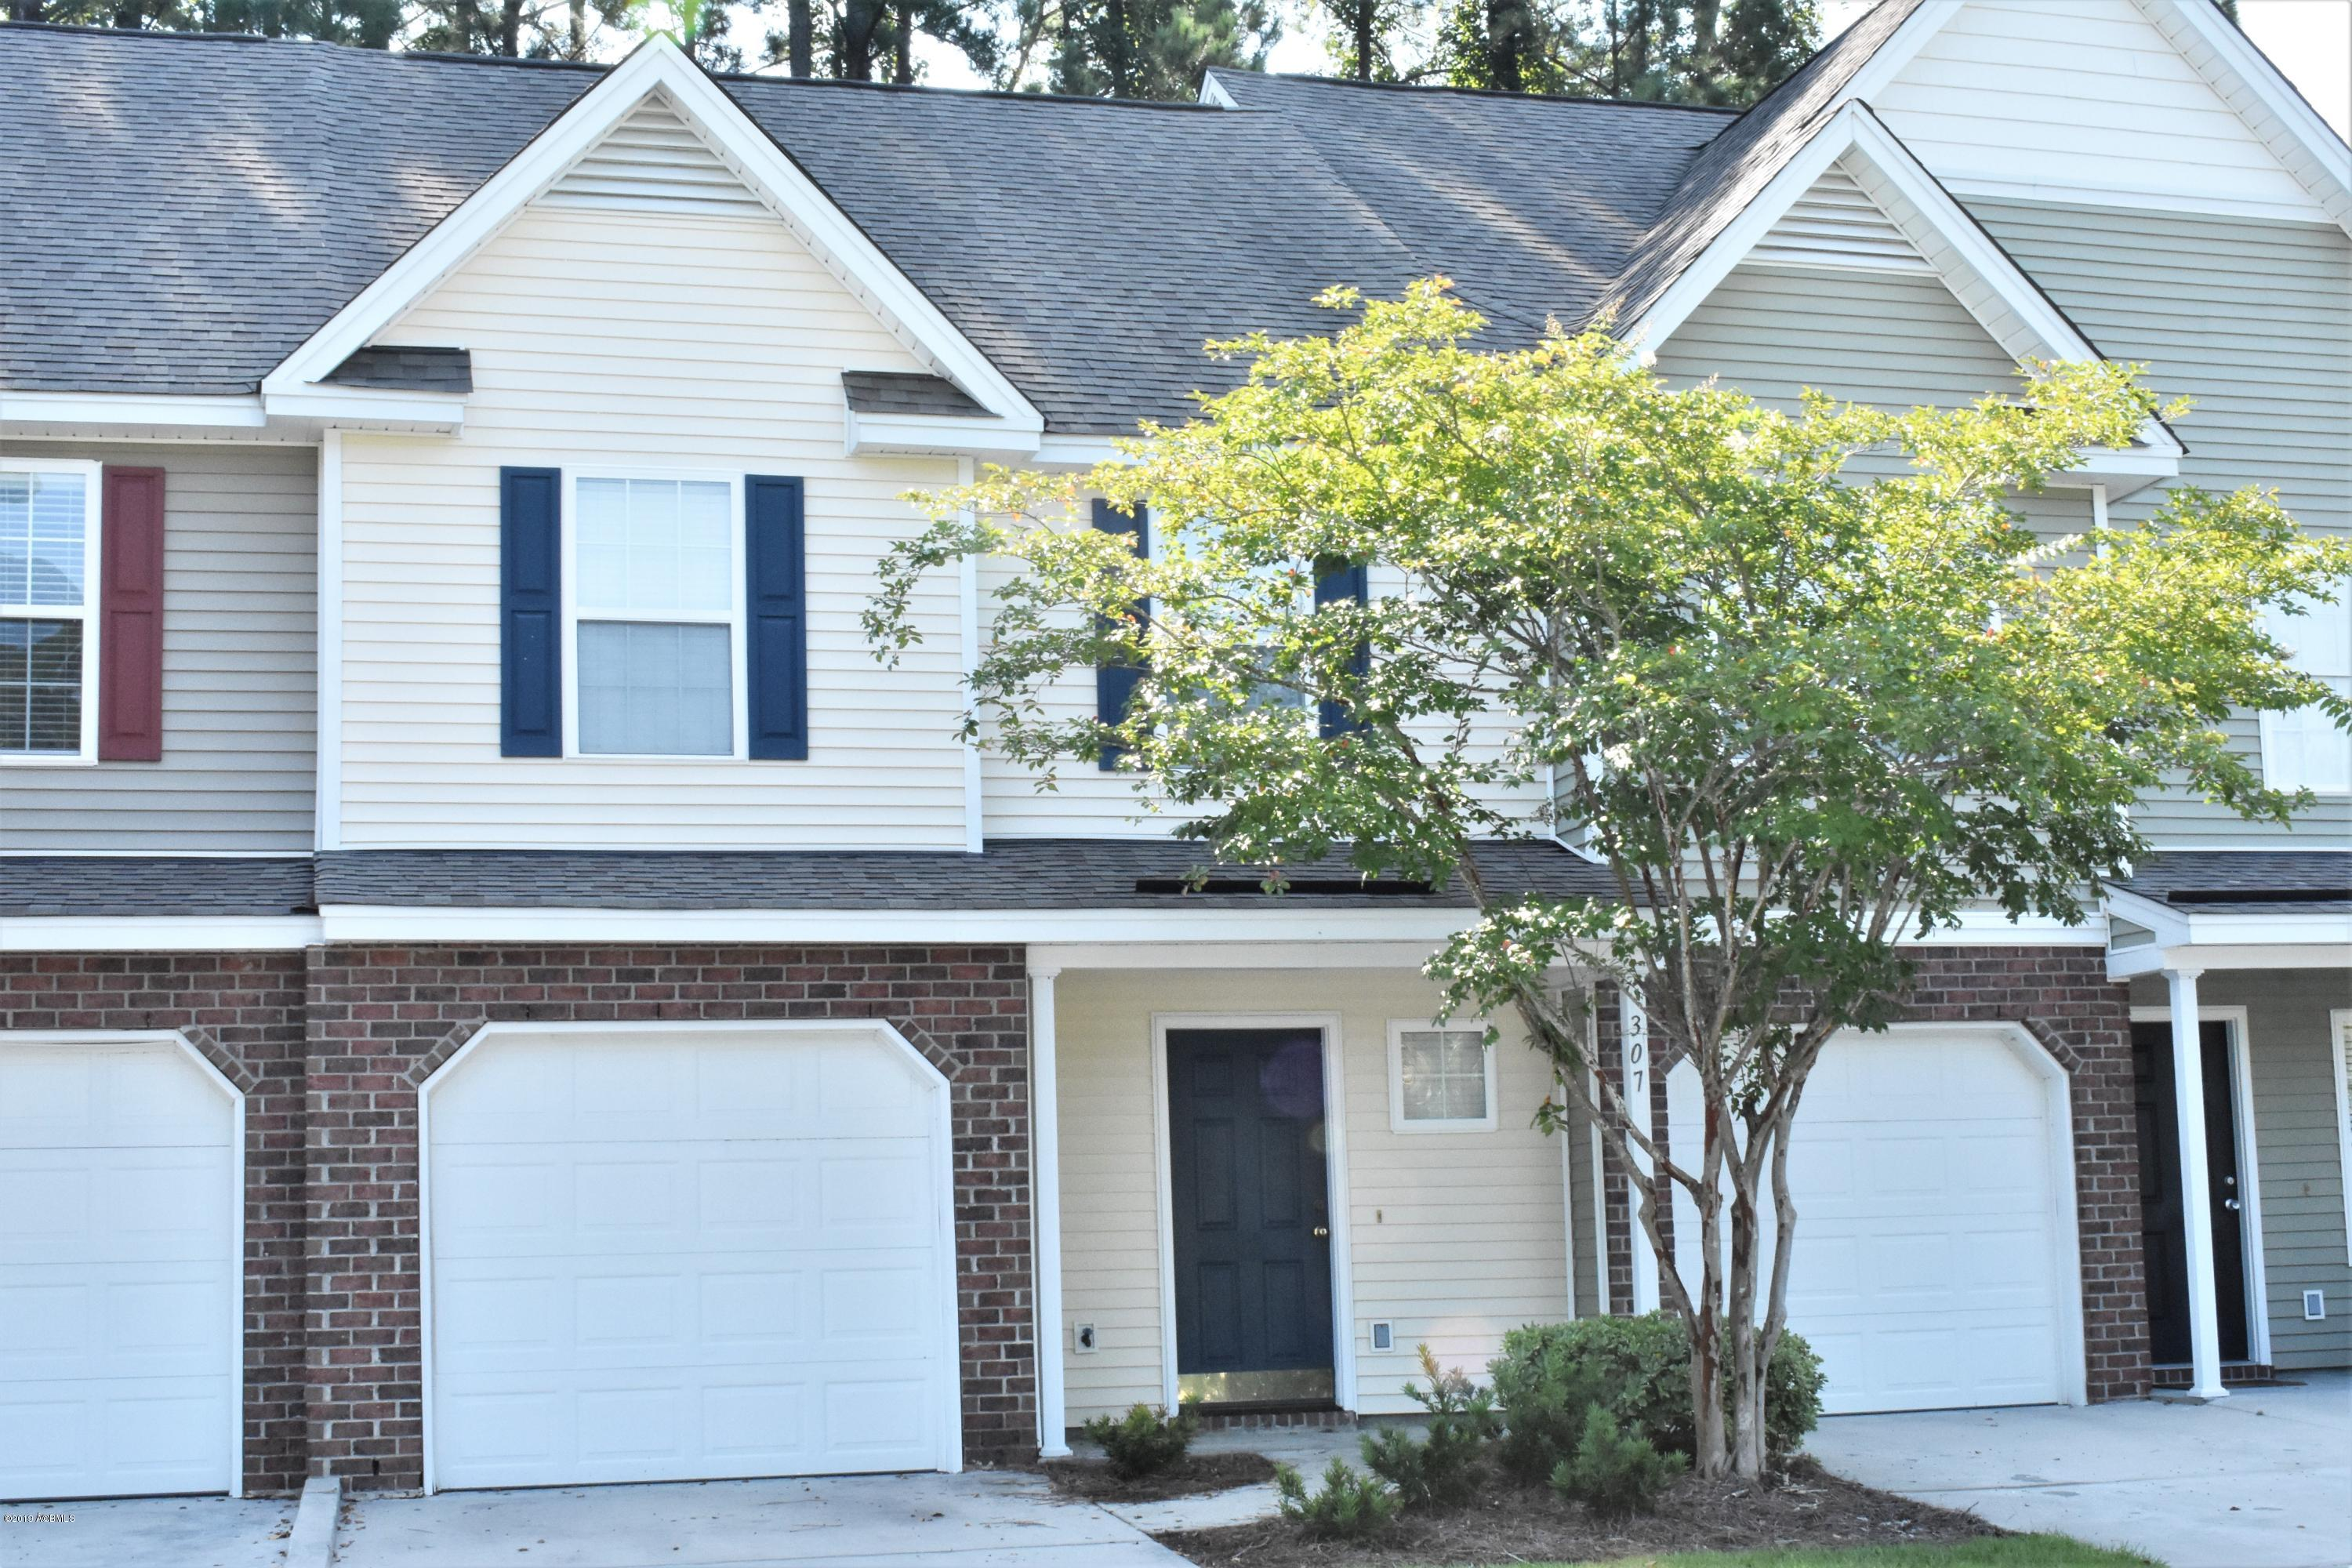 Photo of 307 South Street, Bluffton, SC 29910